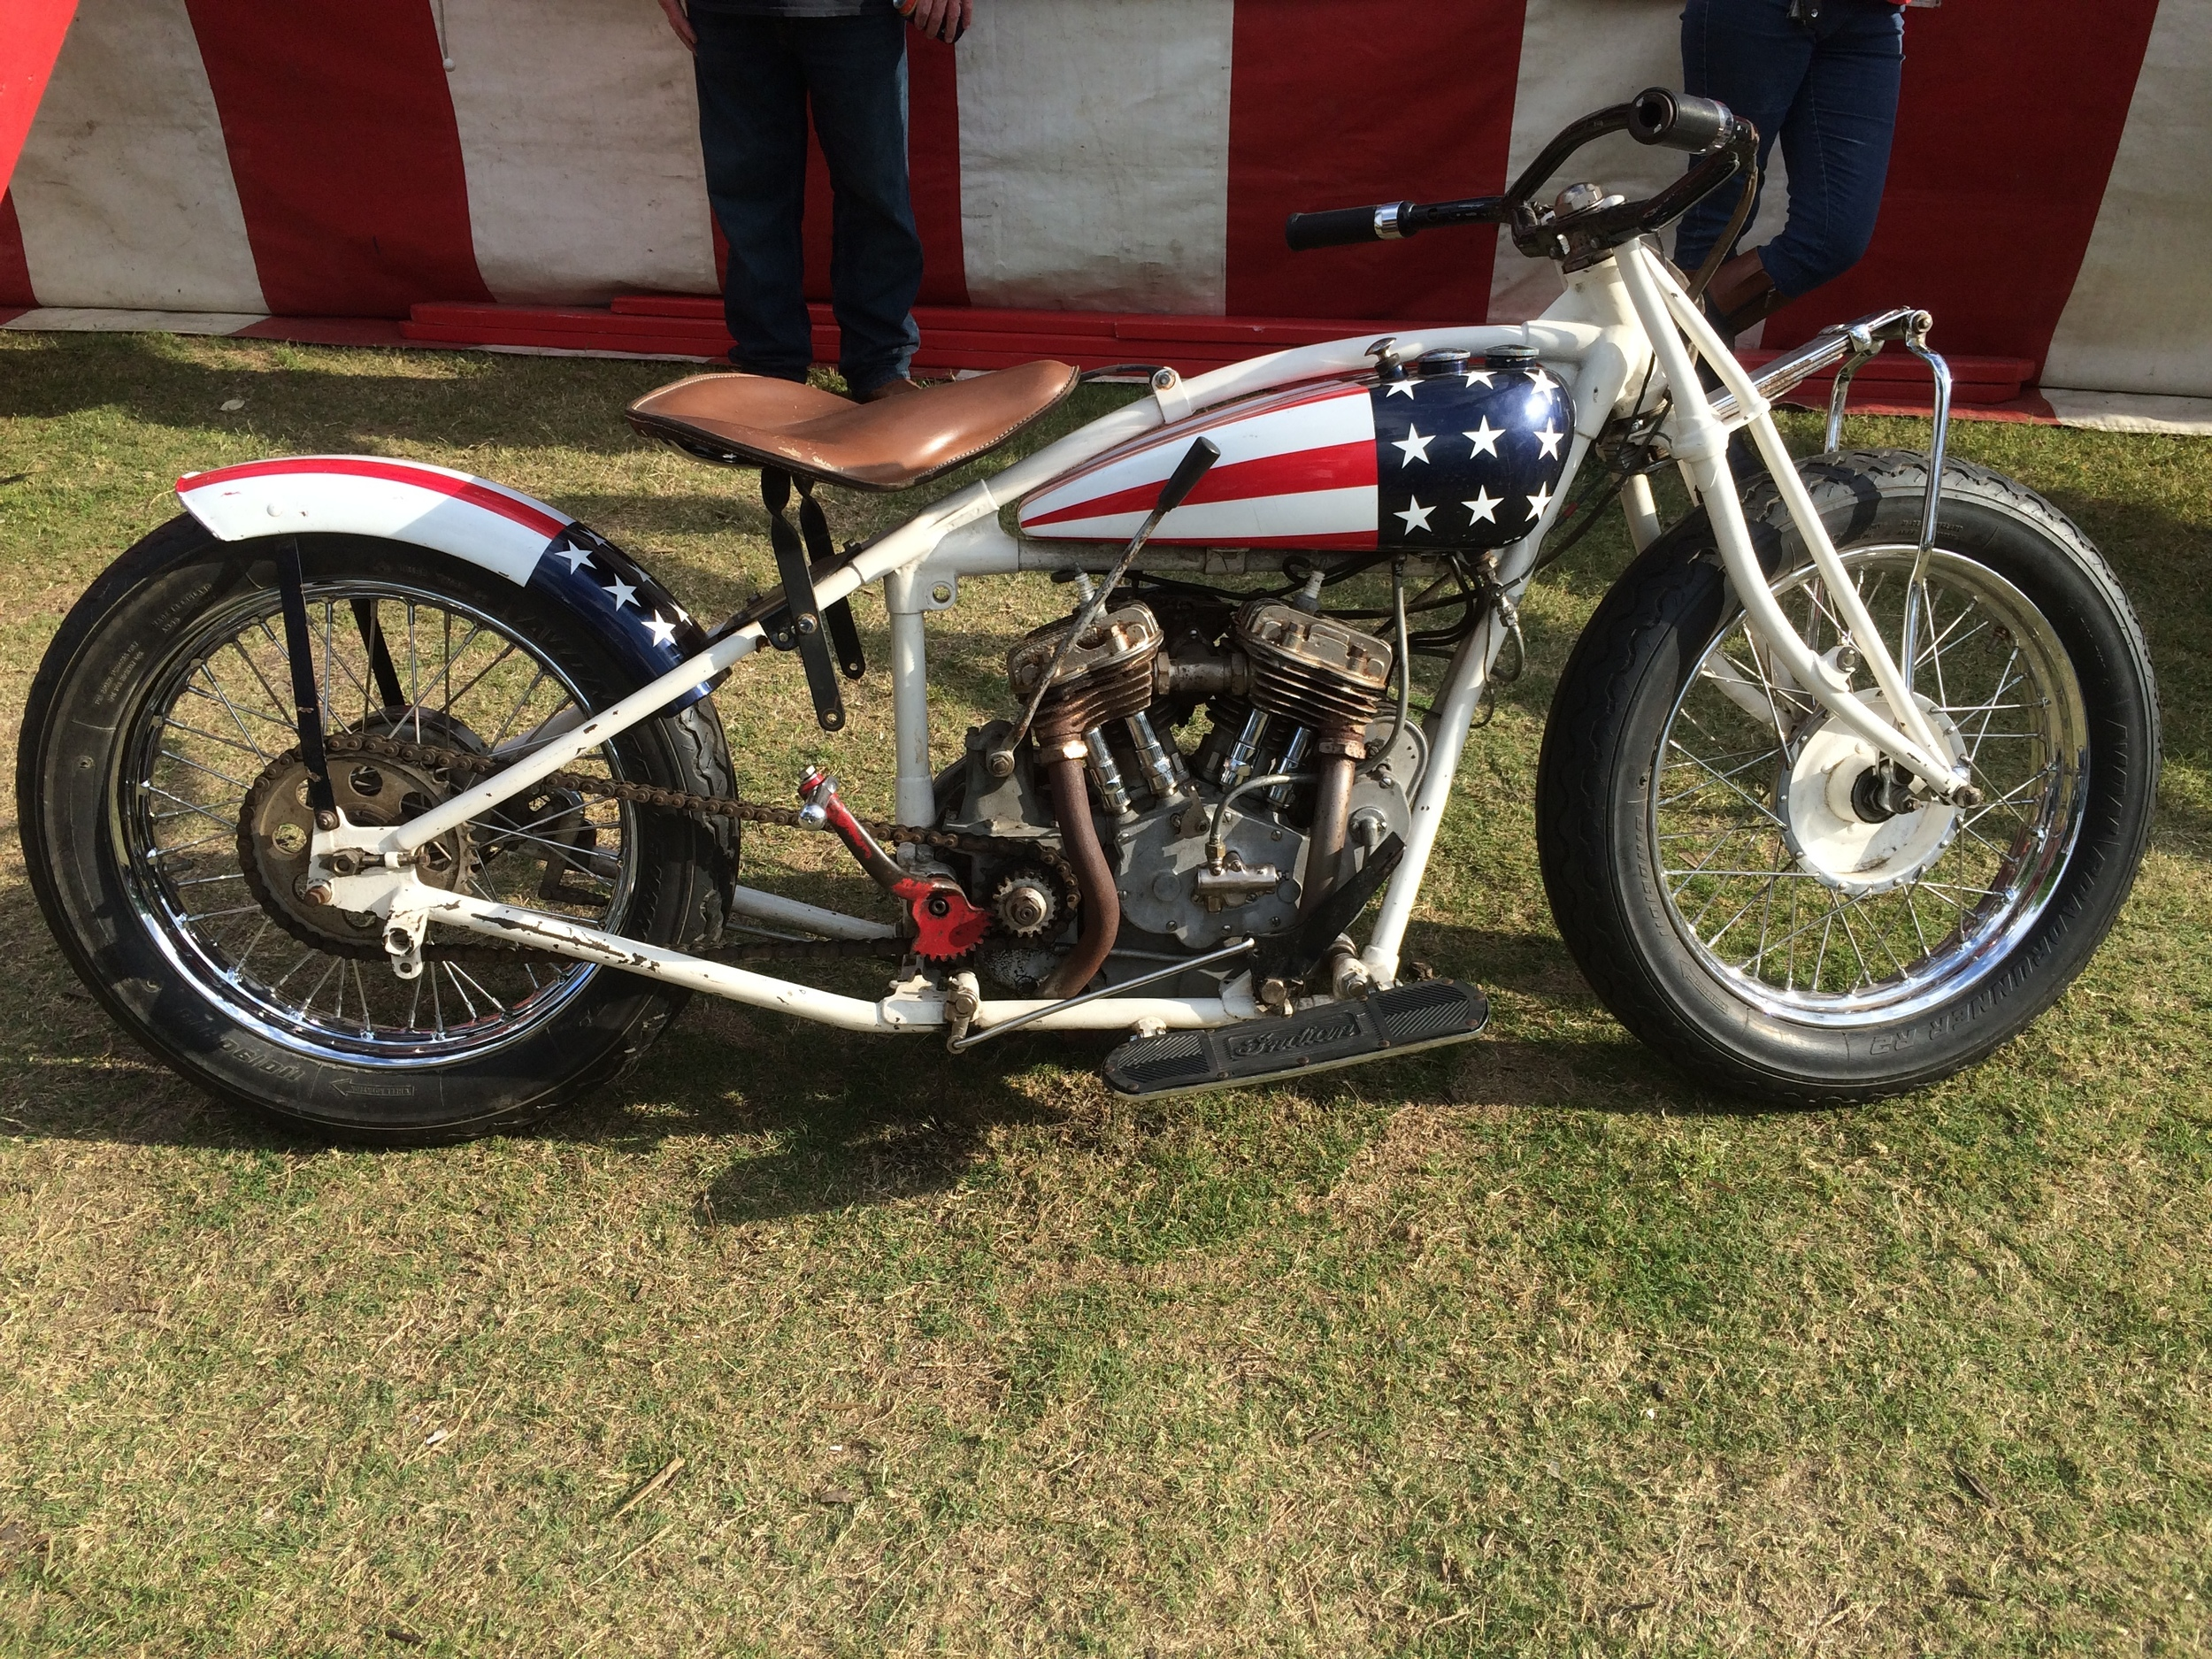 Cool old Indian used in the Wall of Death Show. So badass.